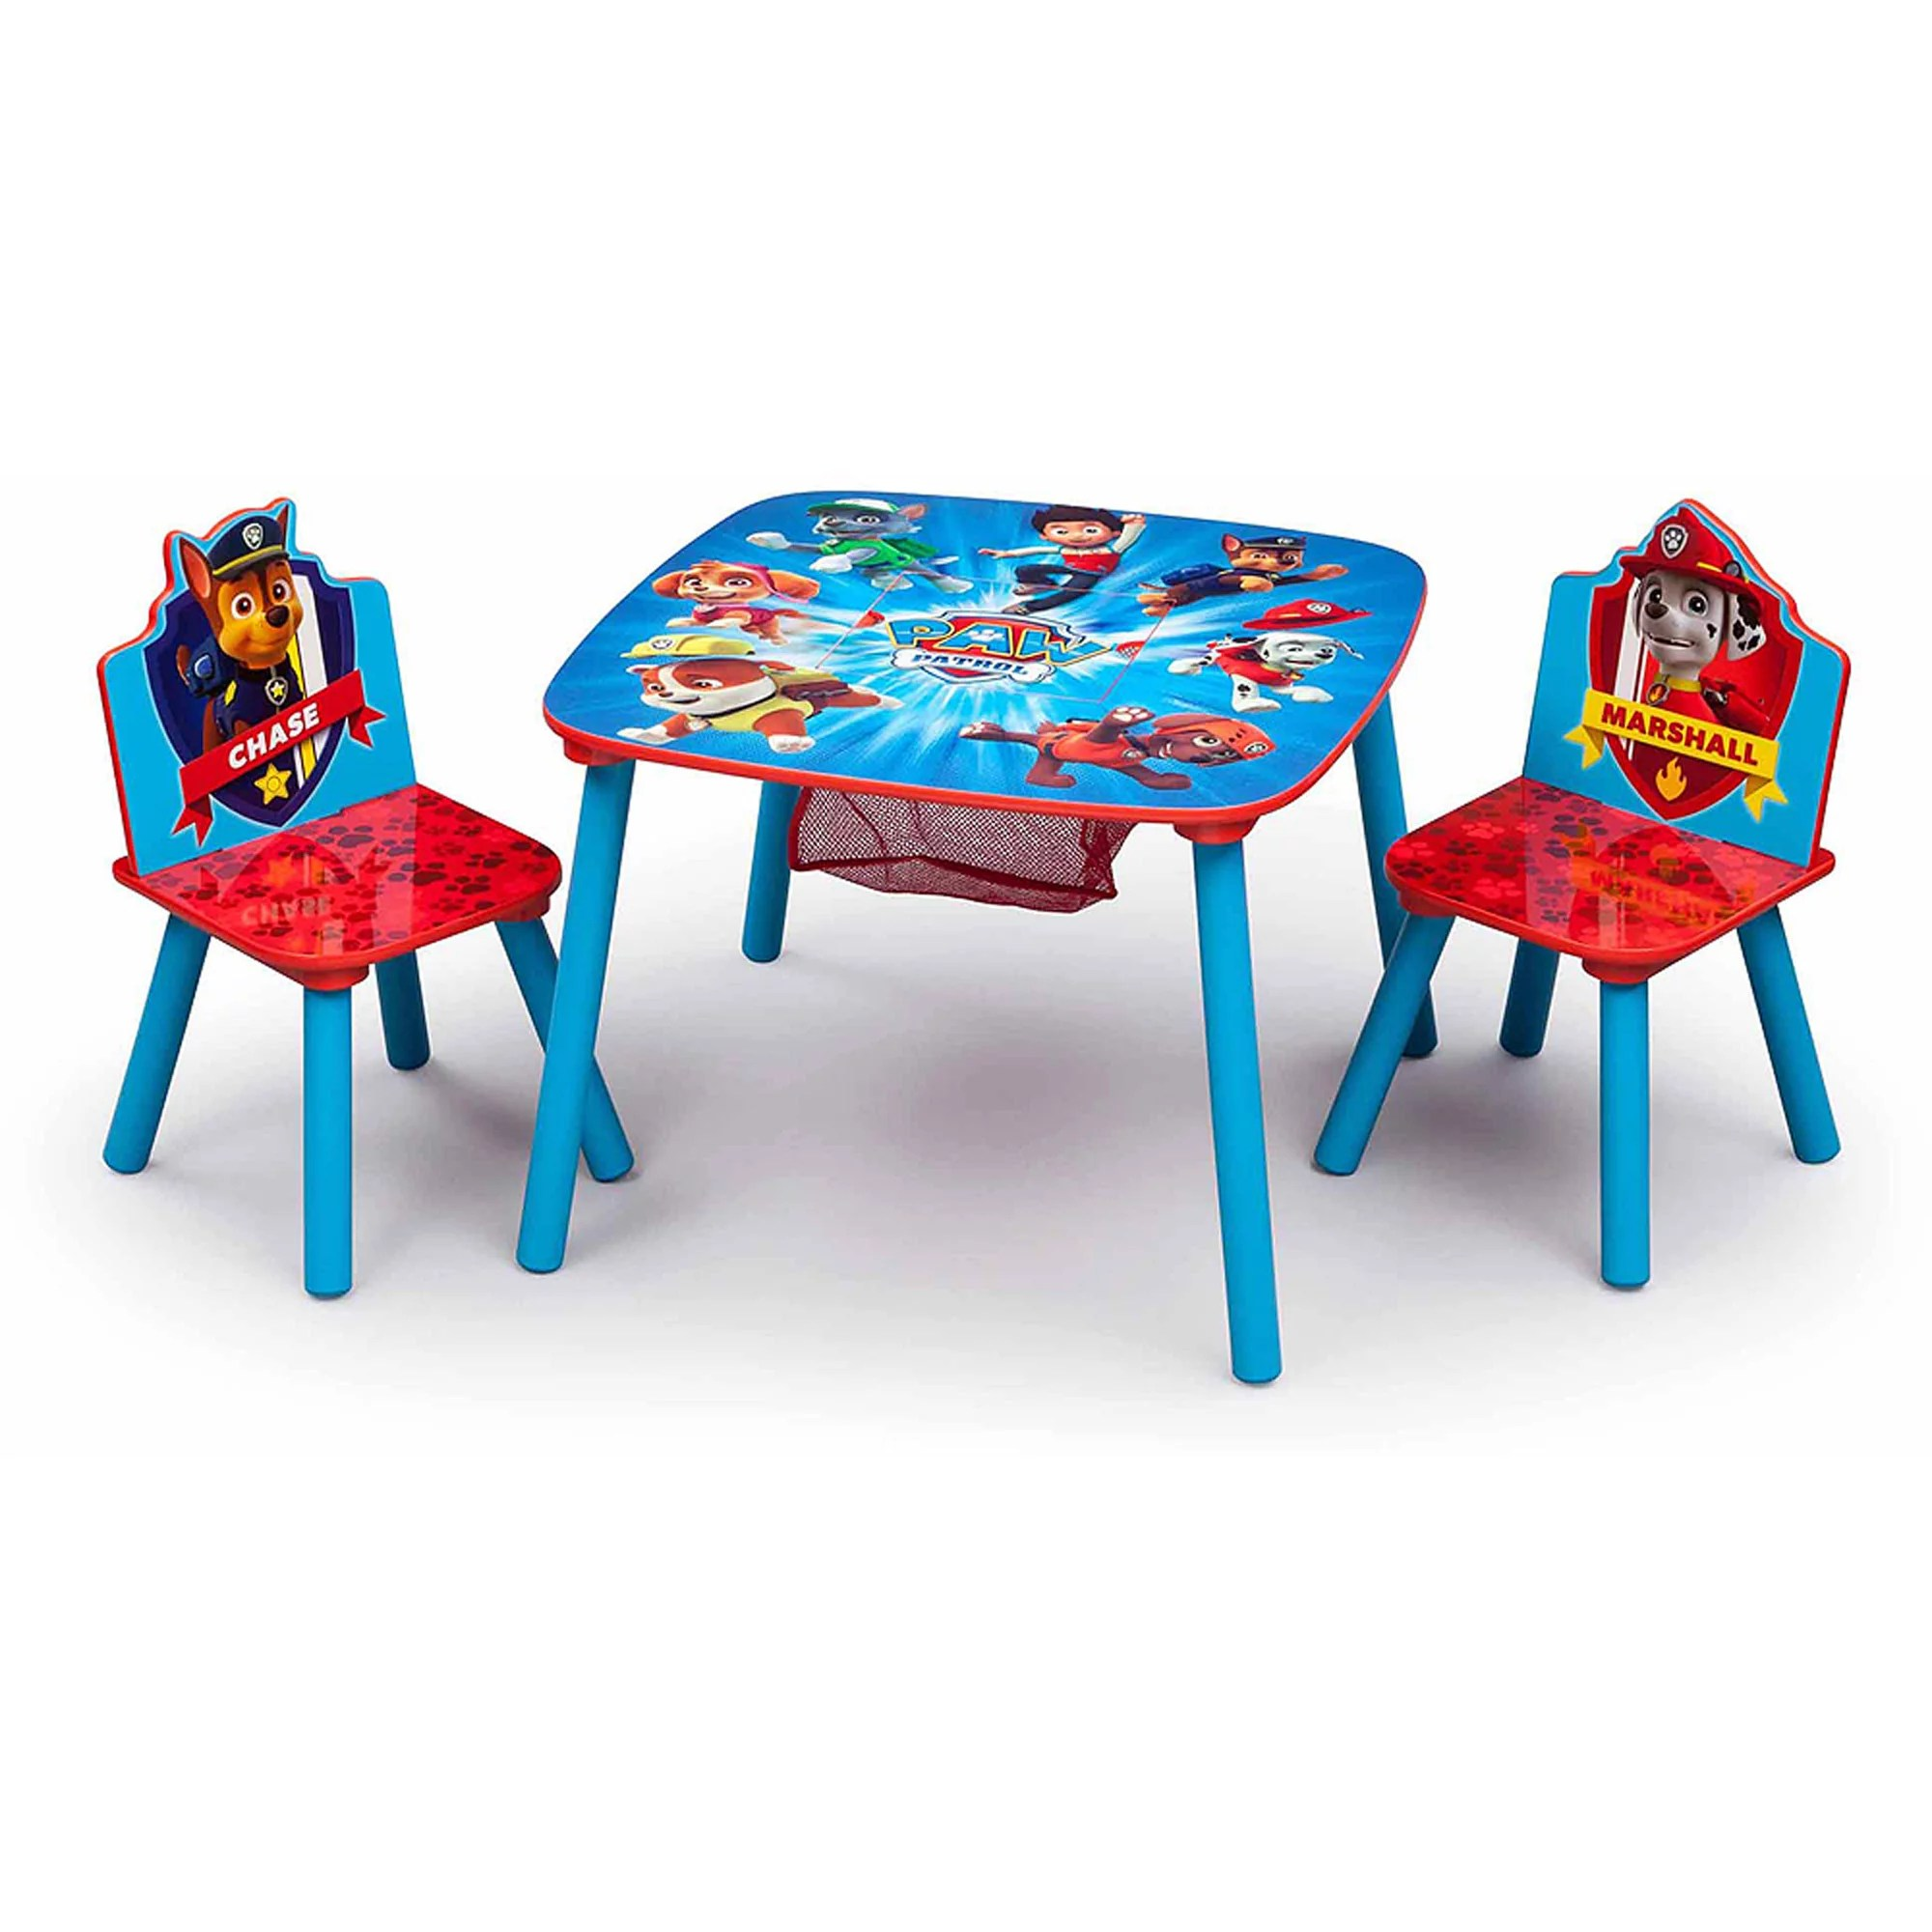 Childrens Wooden Table And Chairs Nick Jr Dora The Explorer Wood Kids Storage Table And Chairs Set By Delta Children